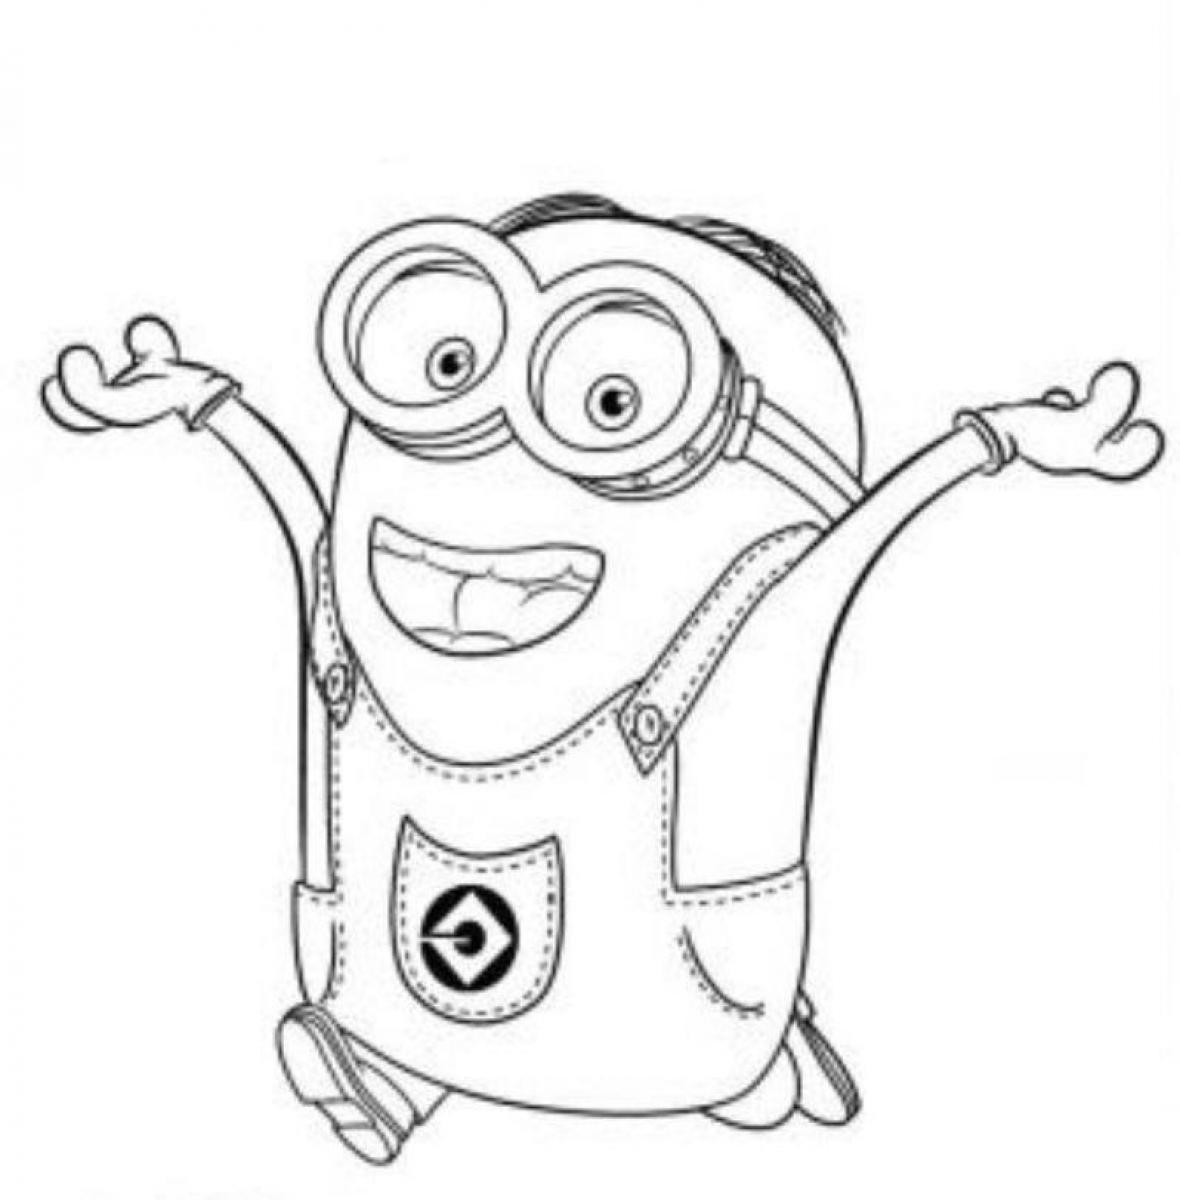 1180x1200 Minion Coloring Pages, Printable Minion Coloring Pages, Free